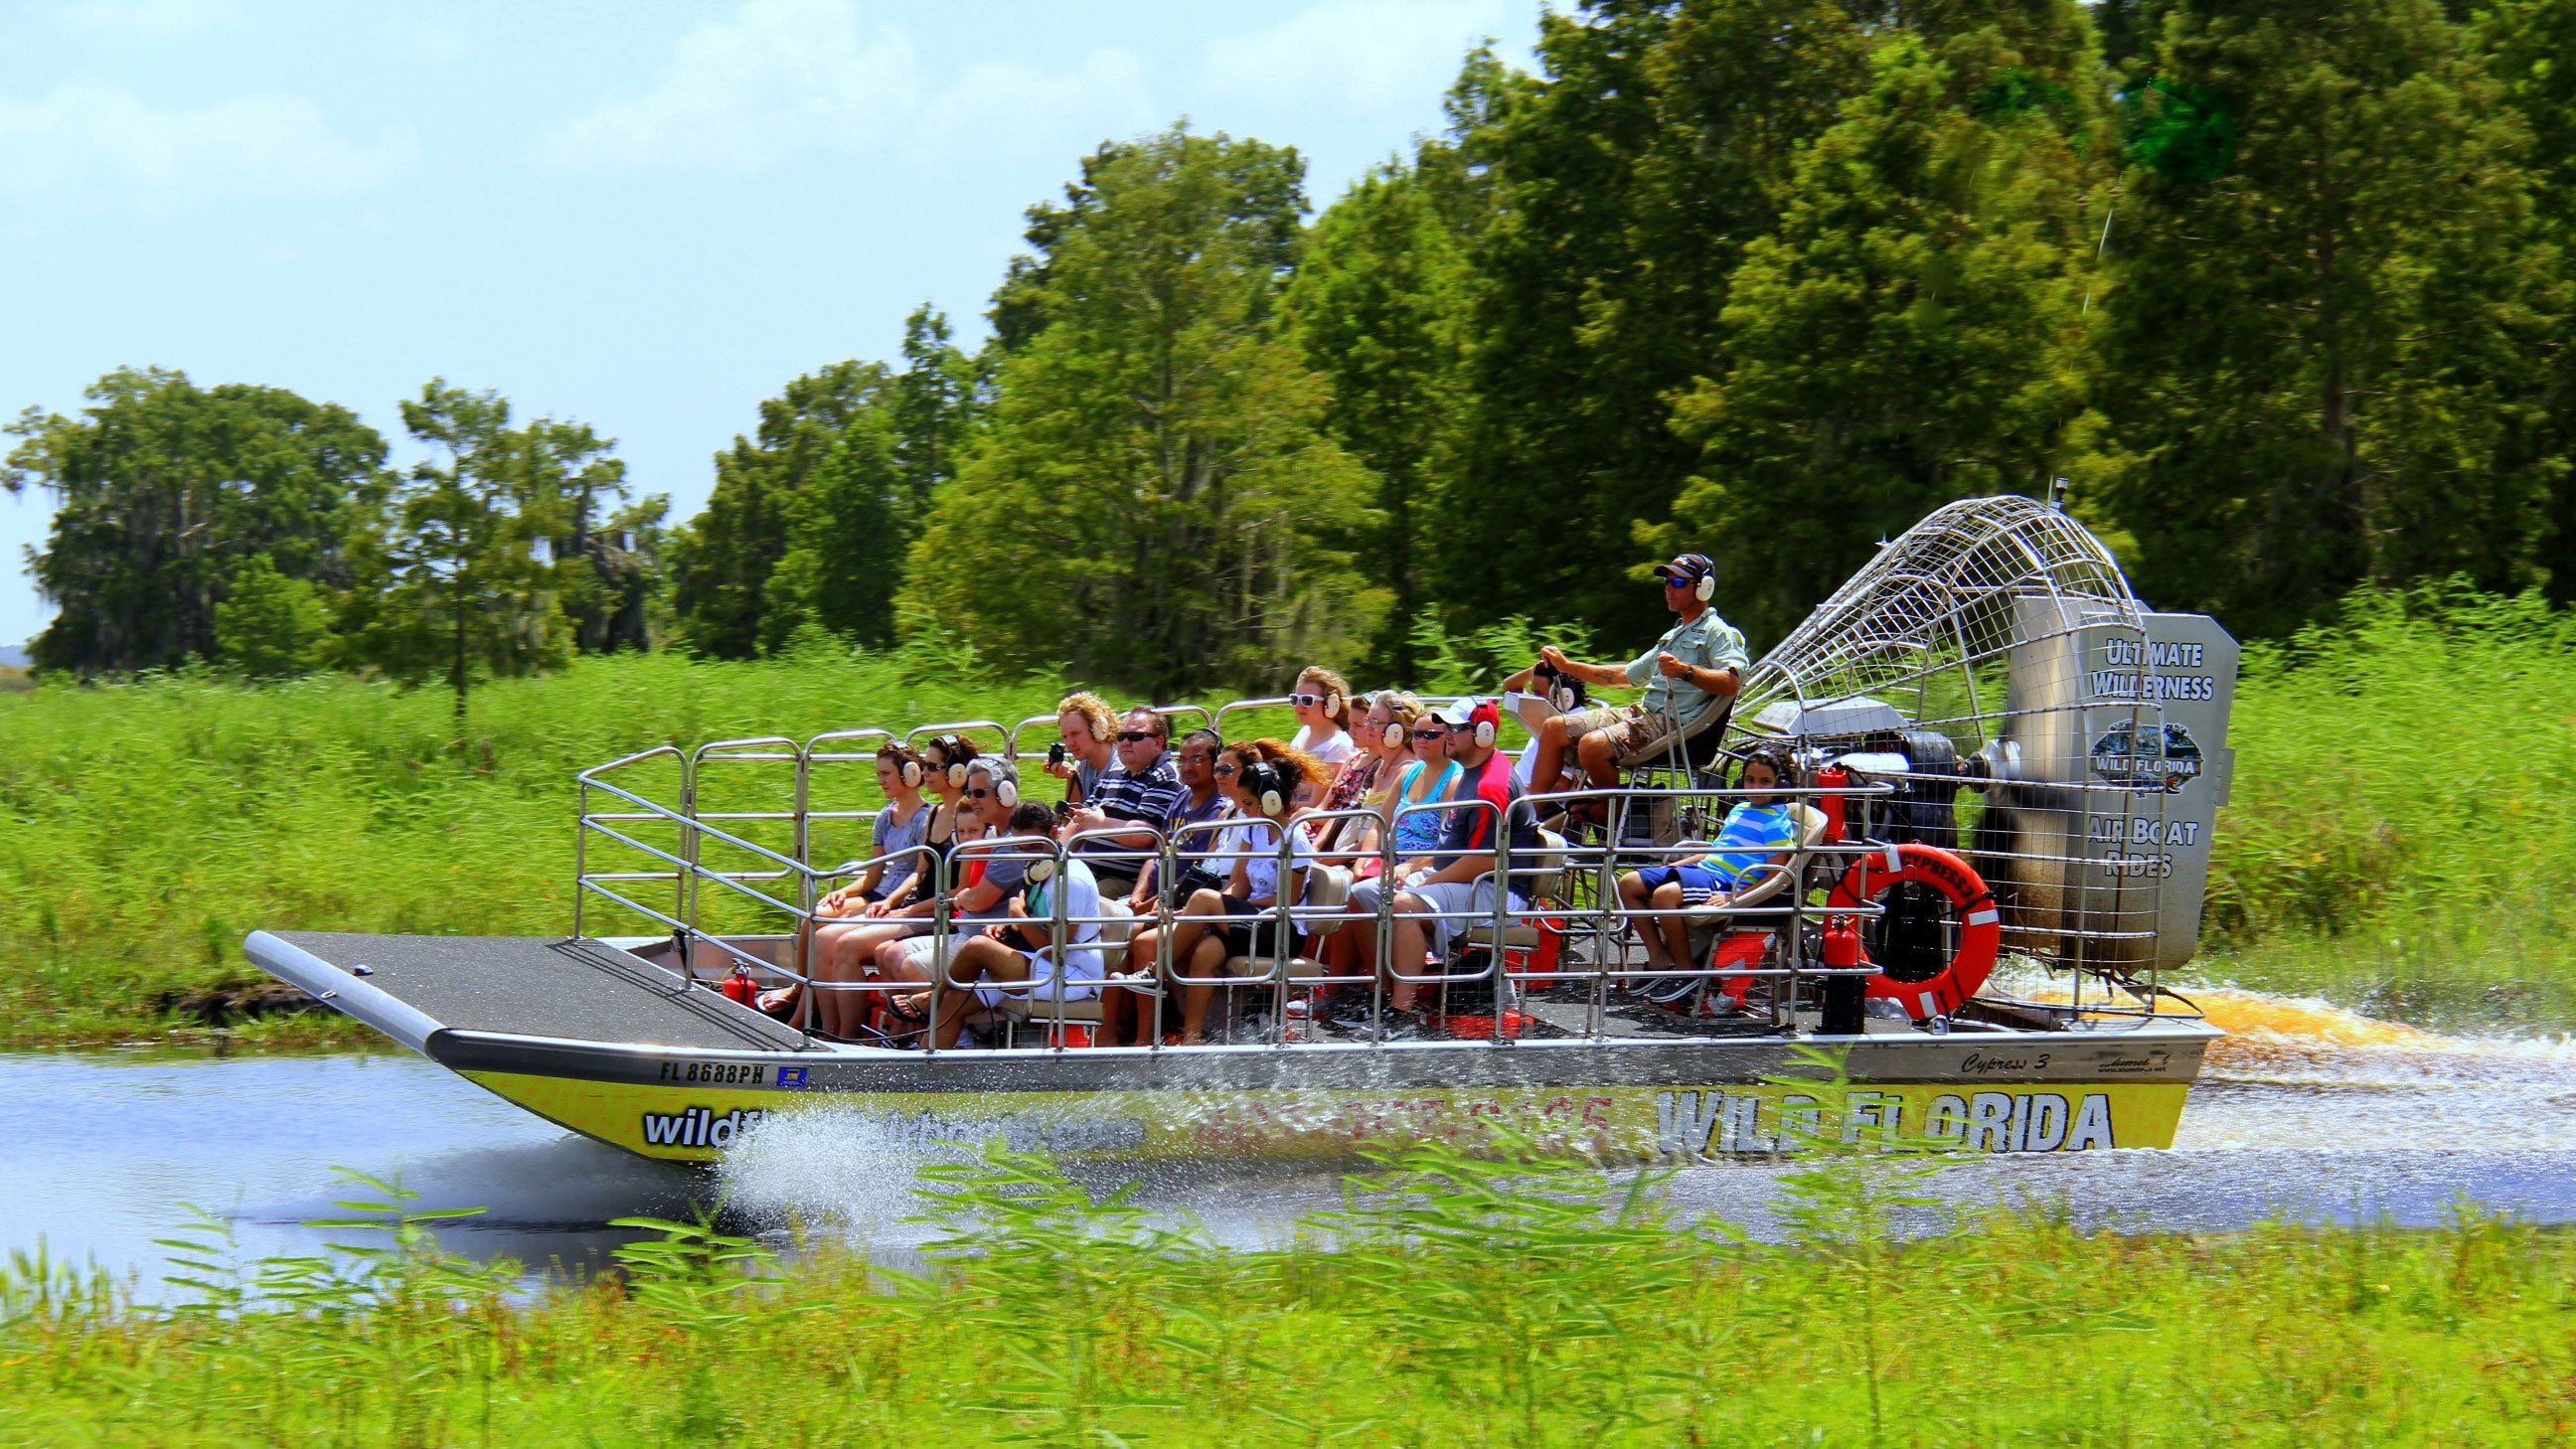 Airboat Ride with Transportation